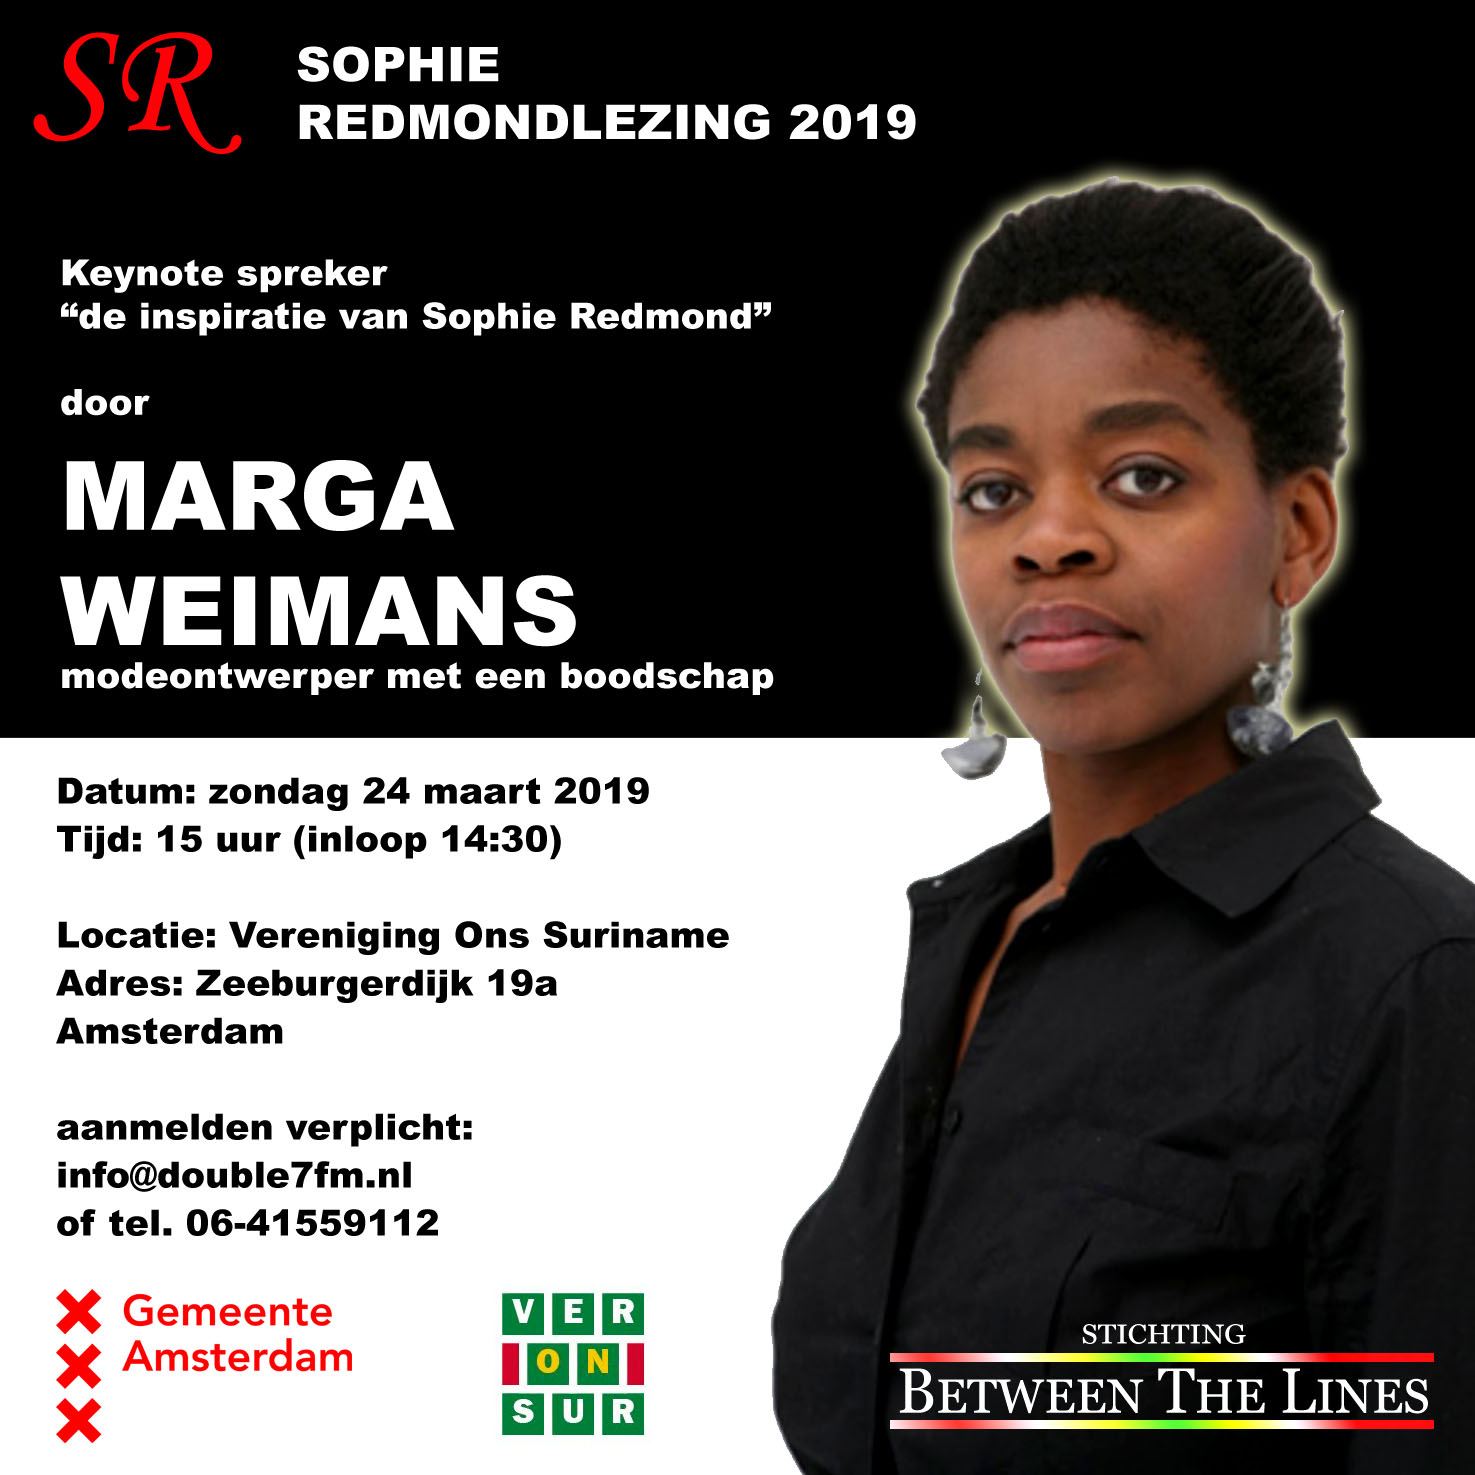 Flyer Marga Weimans Sophie Redmondlezing 2019